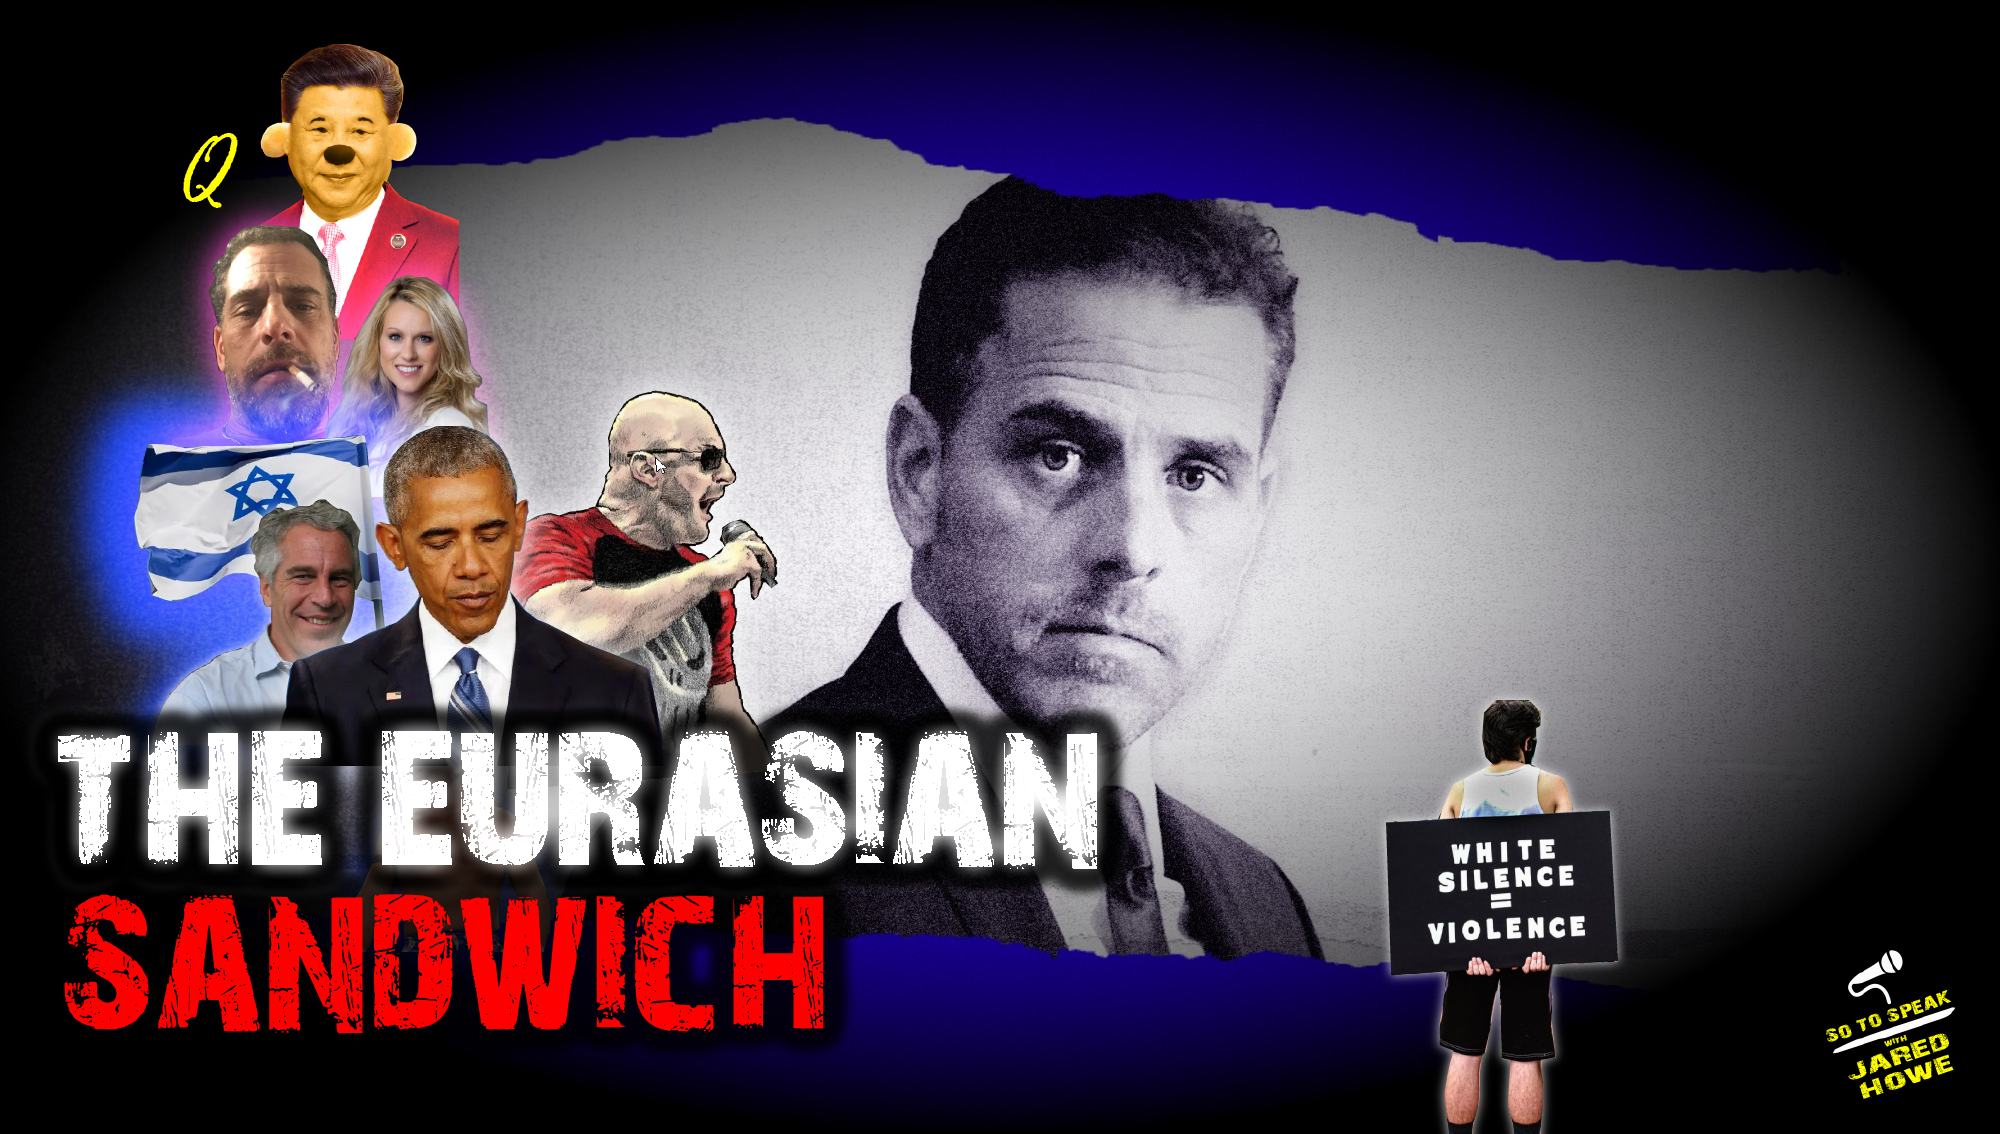 hunter biden china chinese joe biden christopher cantwell dugin russia